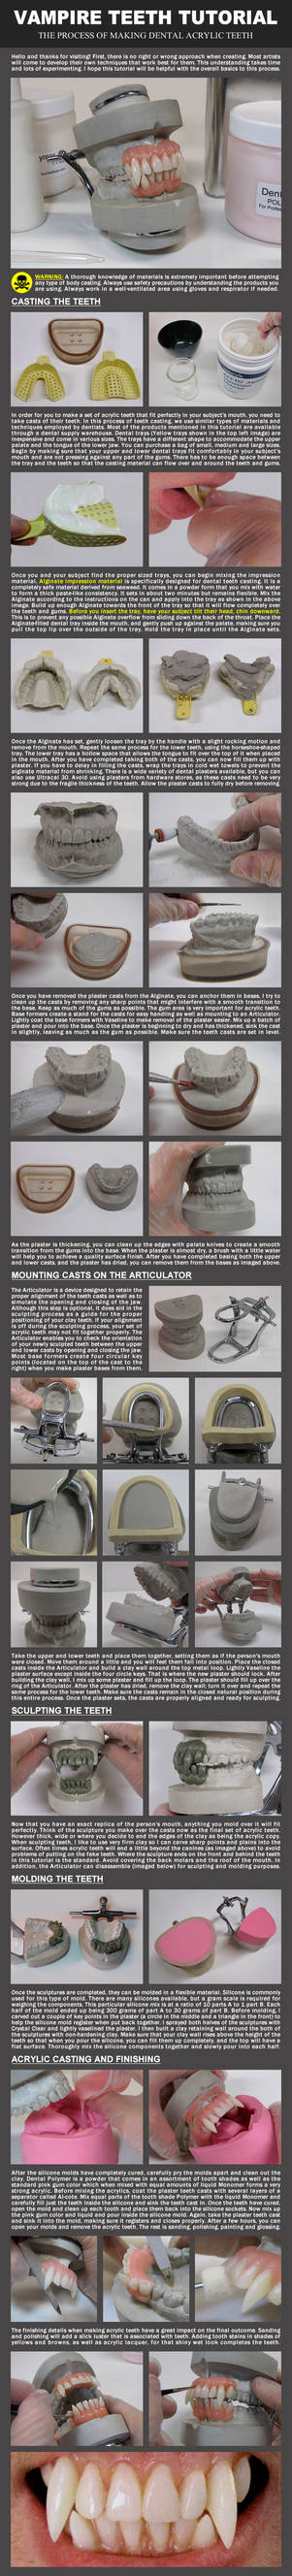 Vampire Teeth Tutorial